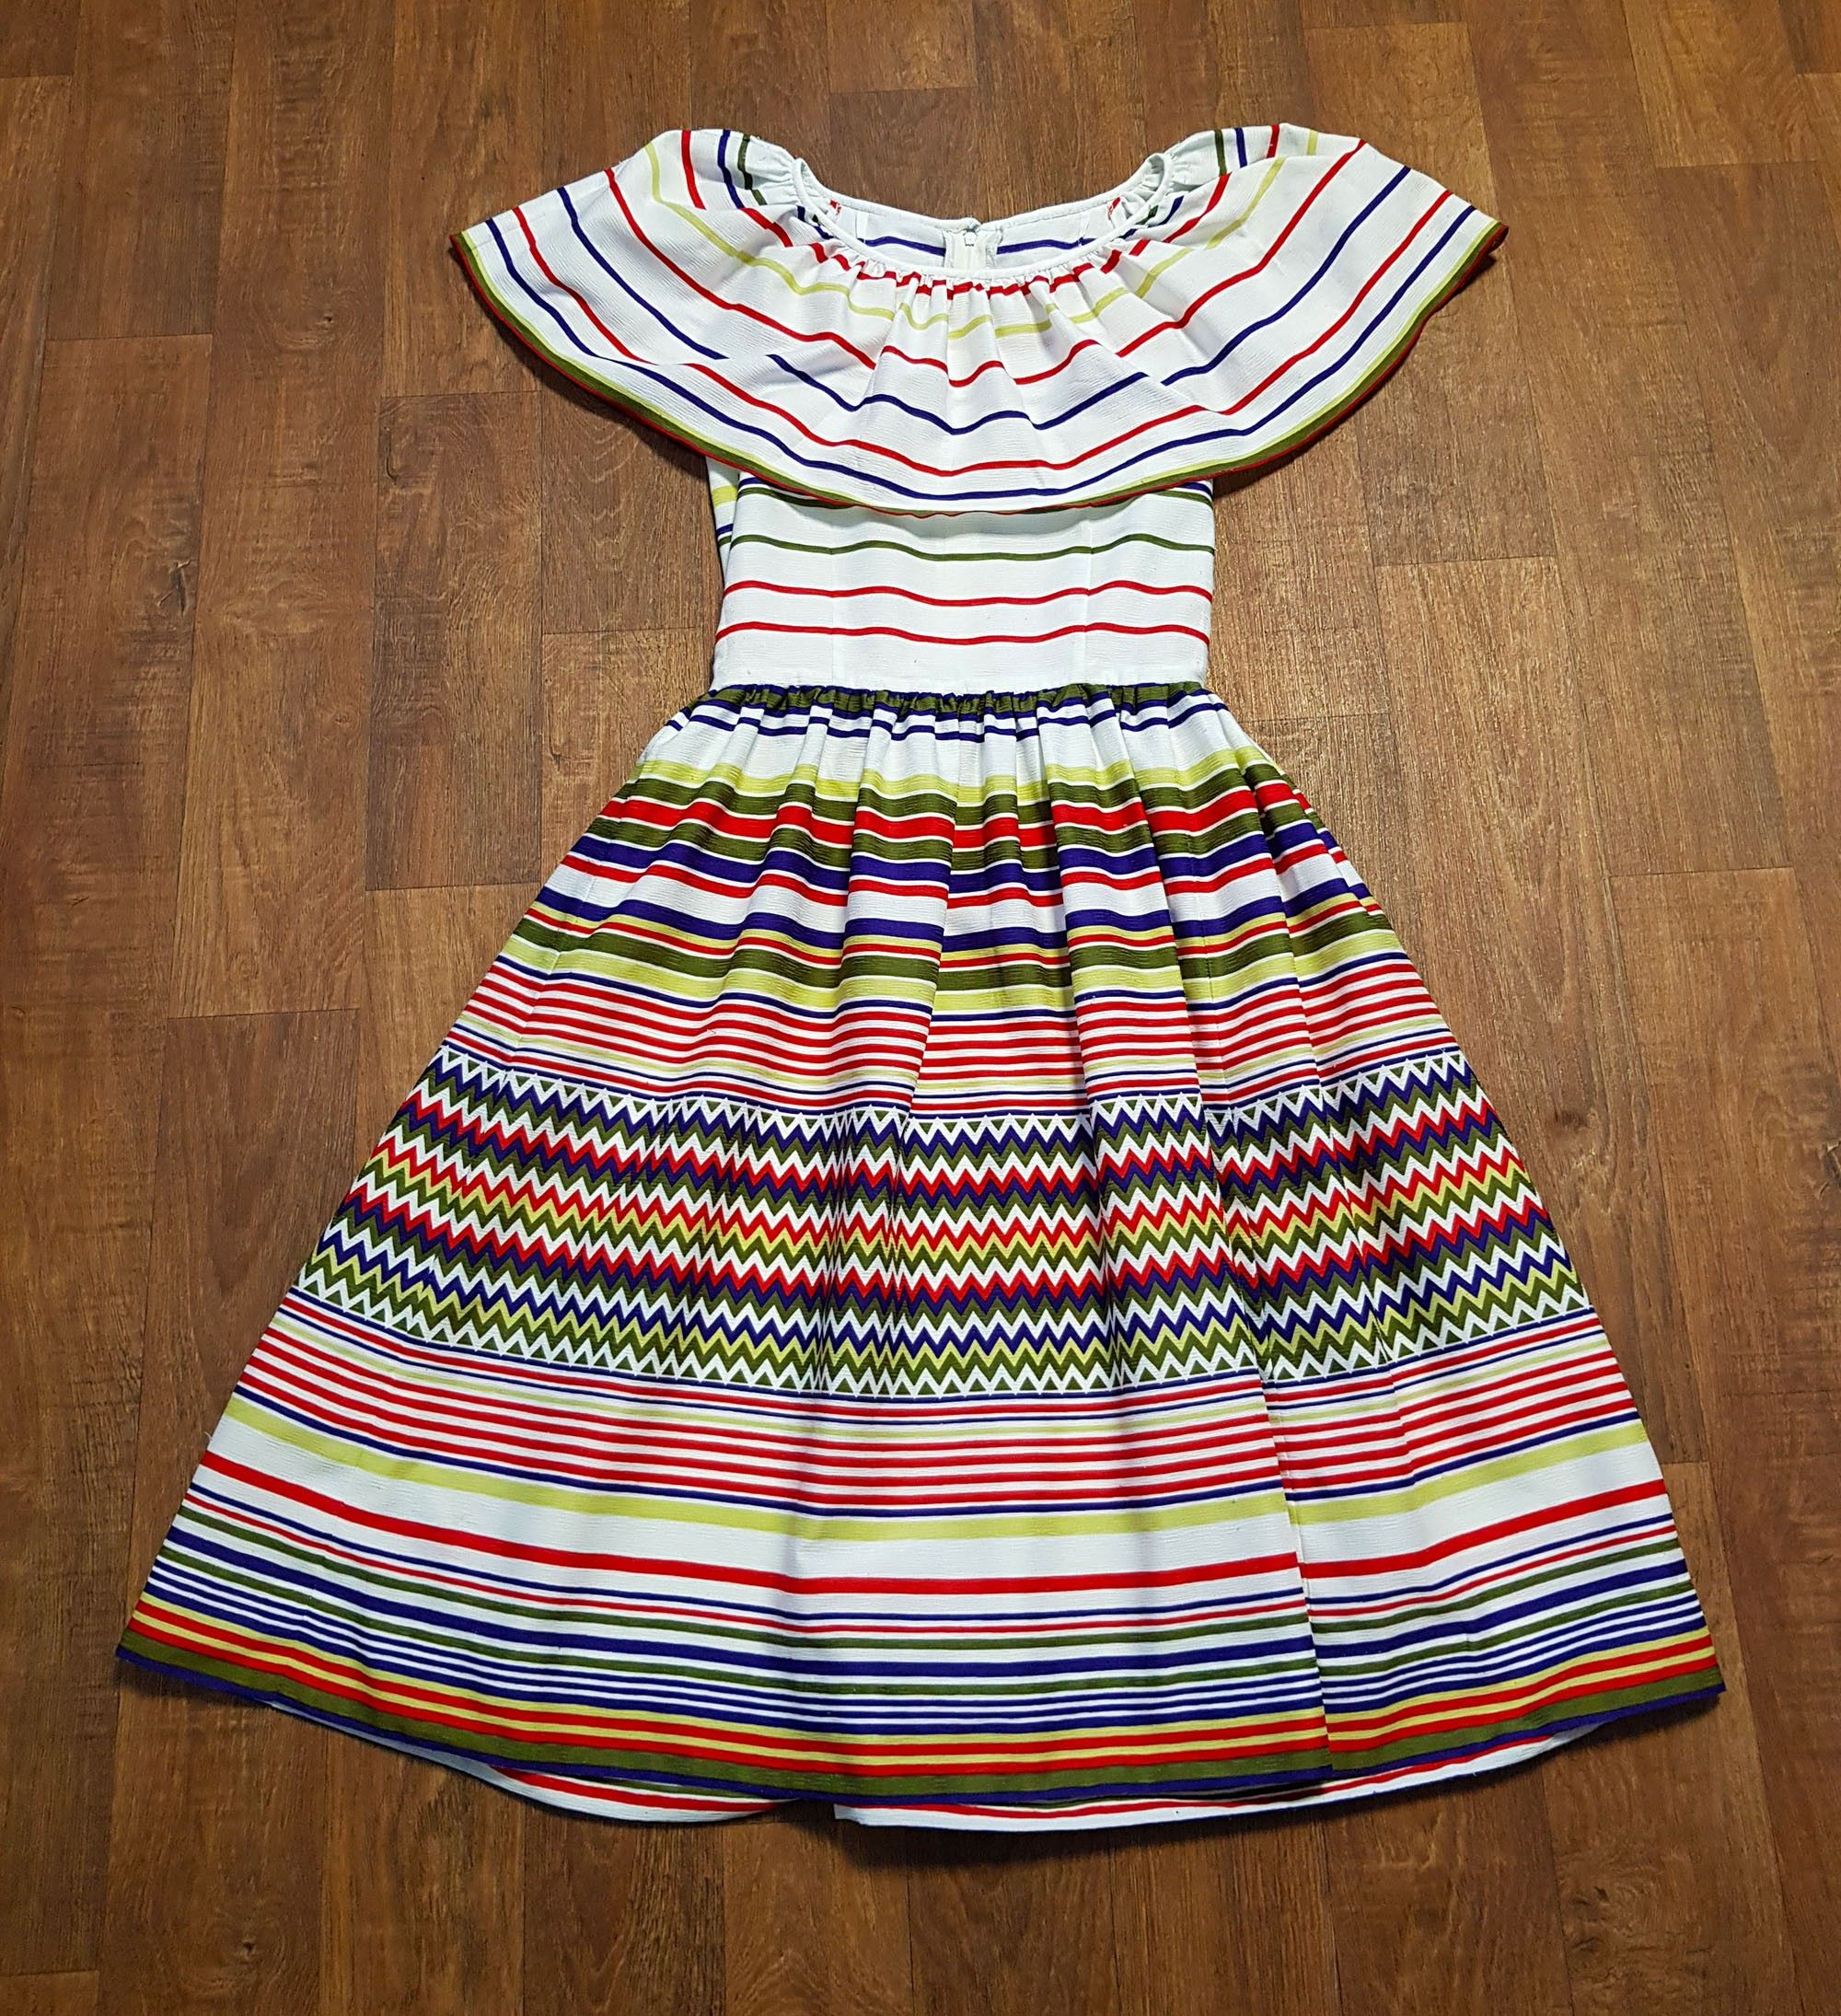 1970s Designer Vintage Lanvin Striped Boho Gypsy Dress UK Size 10